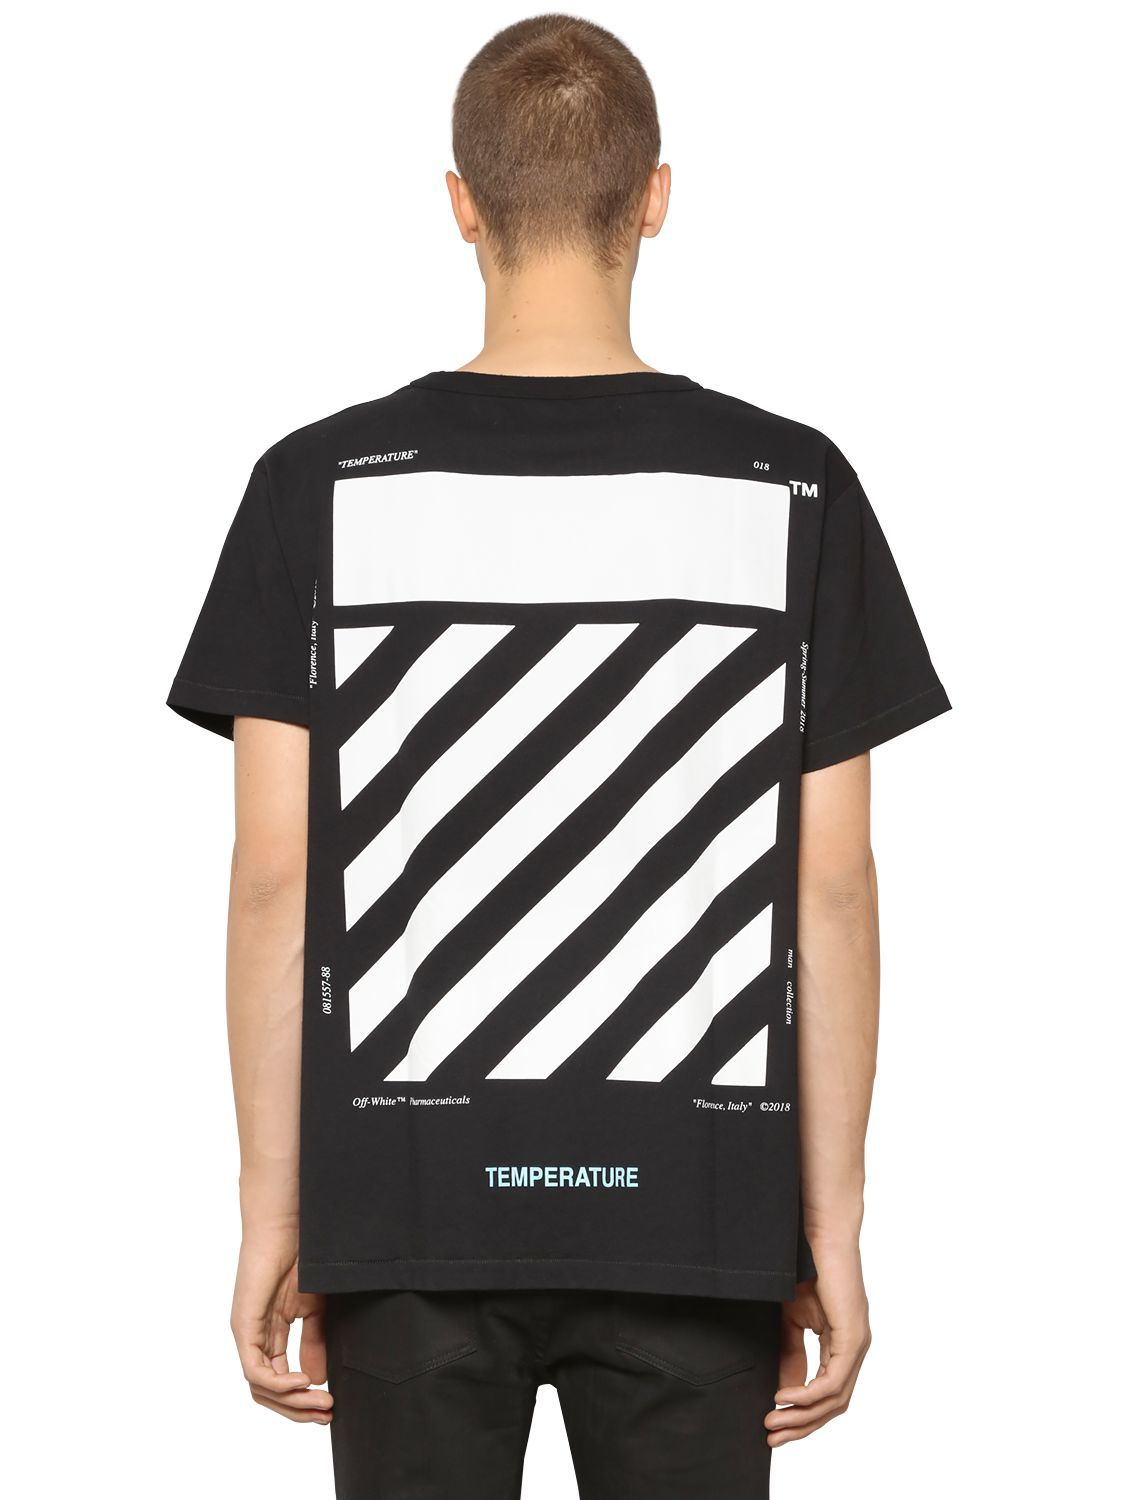 OFF-WHITE OVERSIZE DIAG TEMPERATURE JERSEY T-SHIRT.  off-white  cloth   ac940728a1f